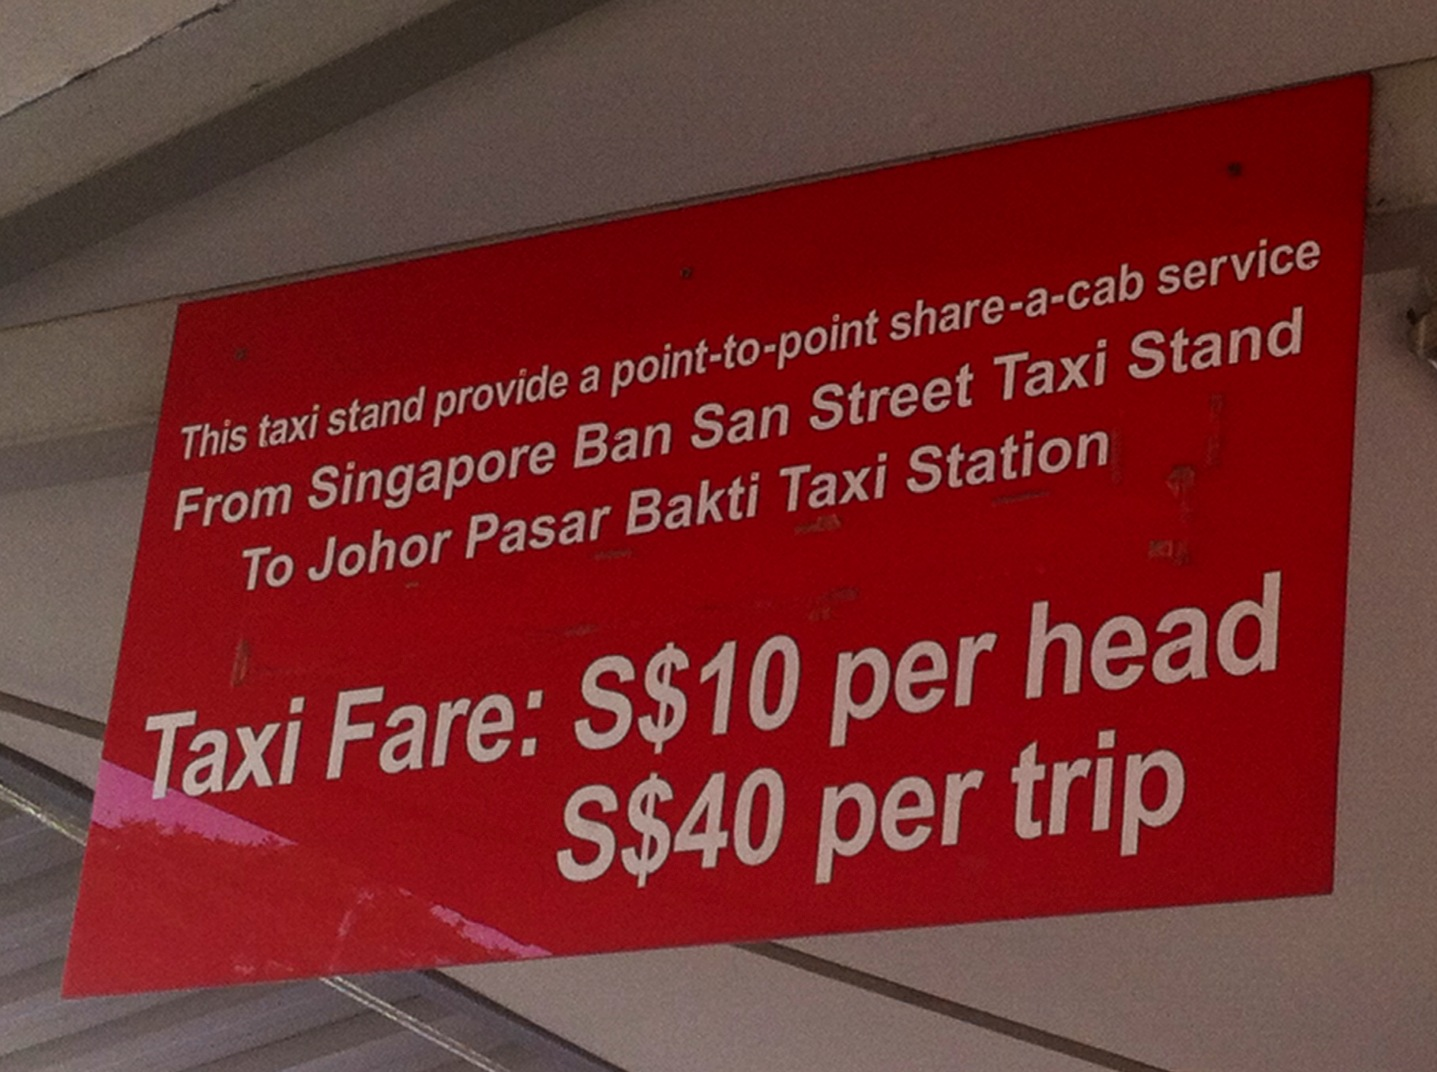 Singapore to Malaysia Taxi fare and rates